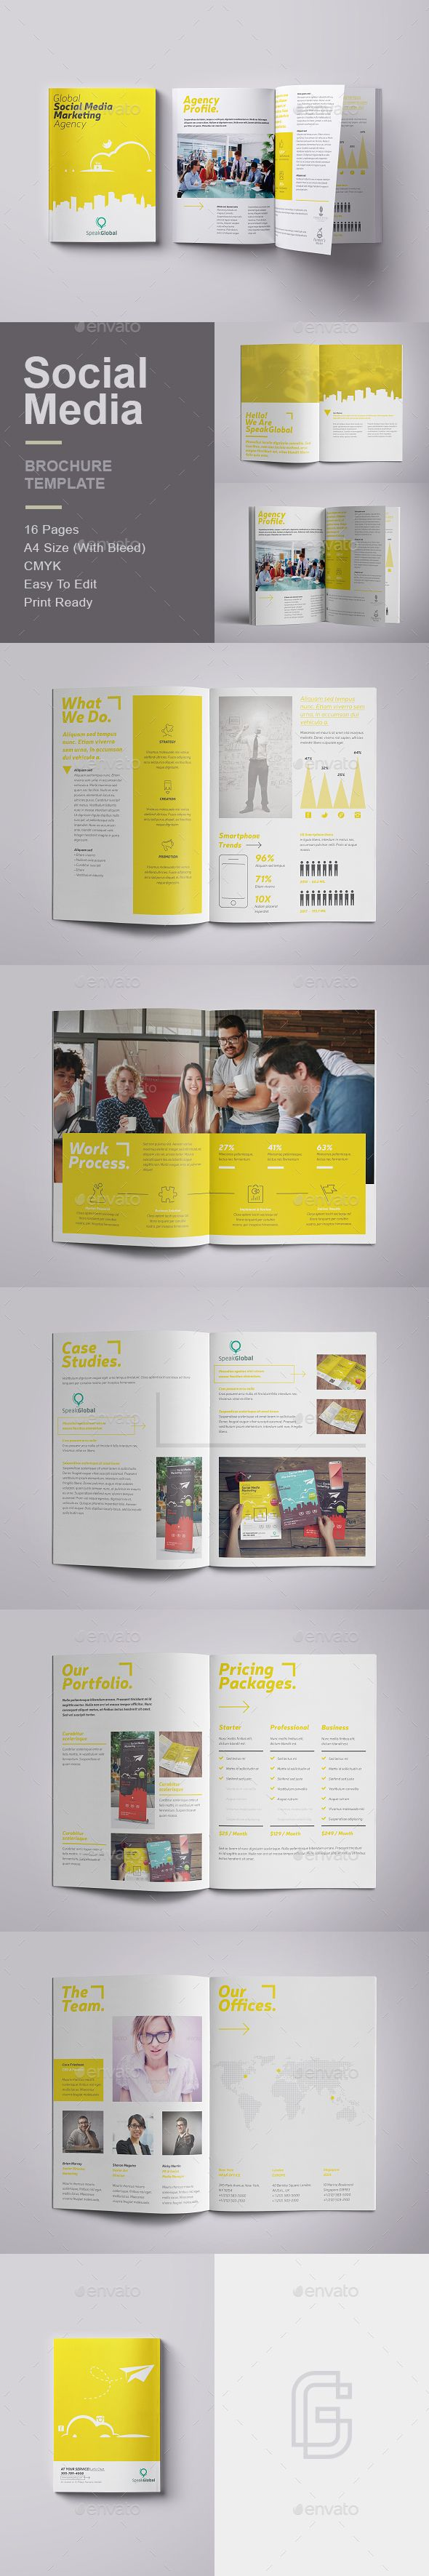 social media brochure template - best 10 design templates ideas on pinterest fashion